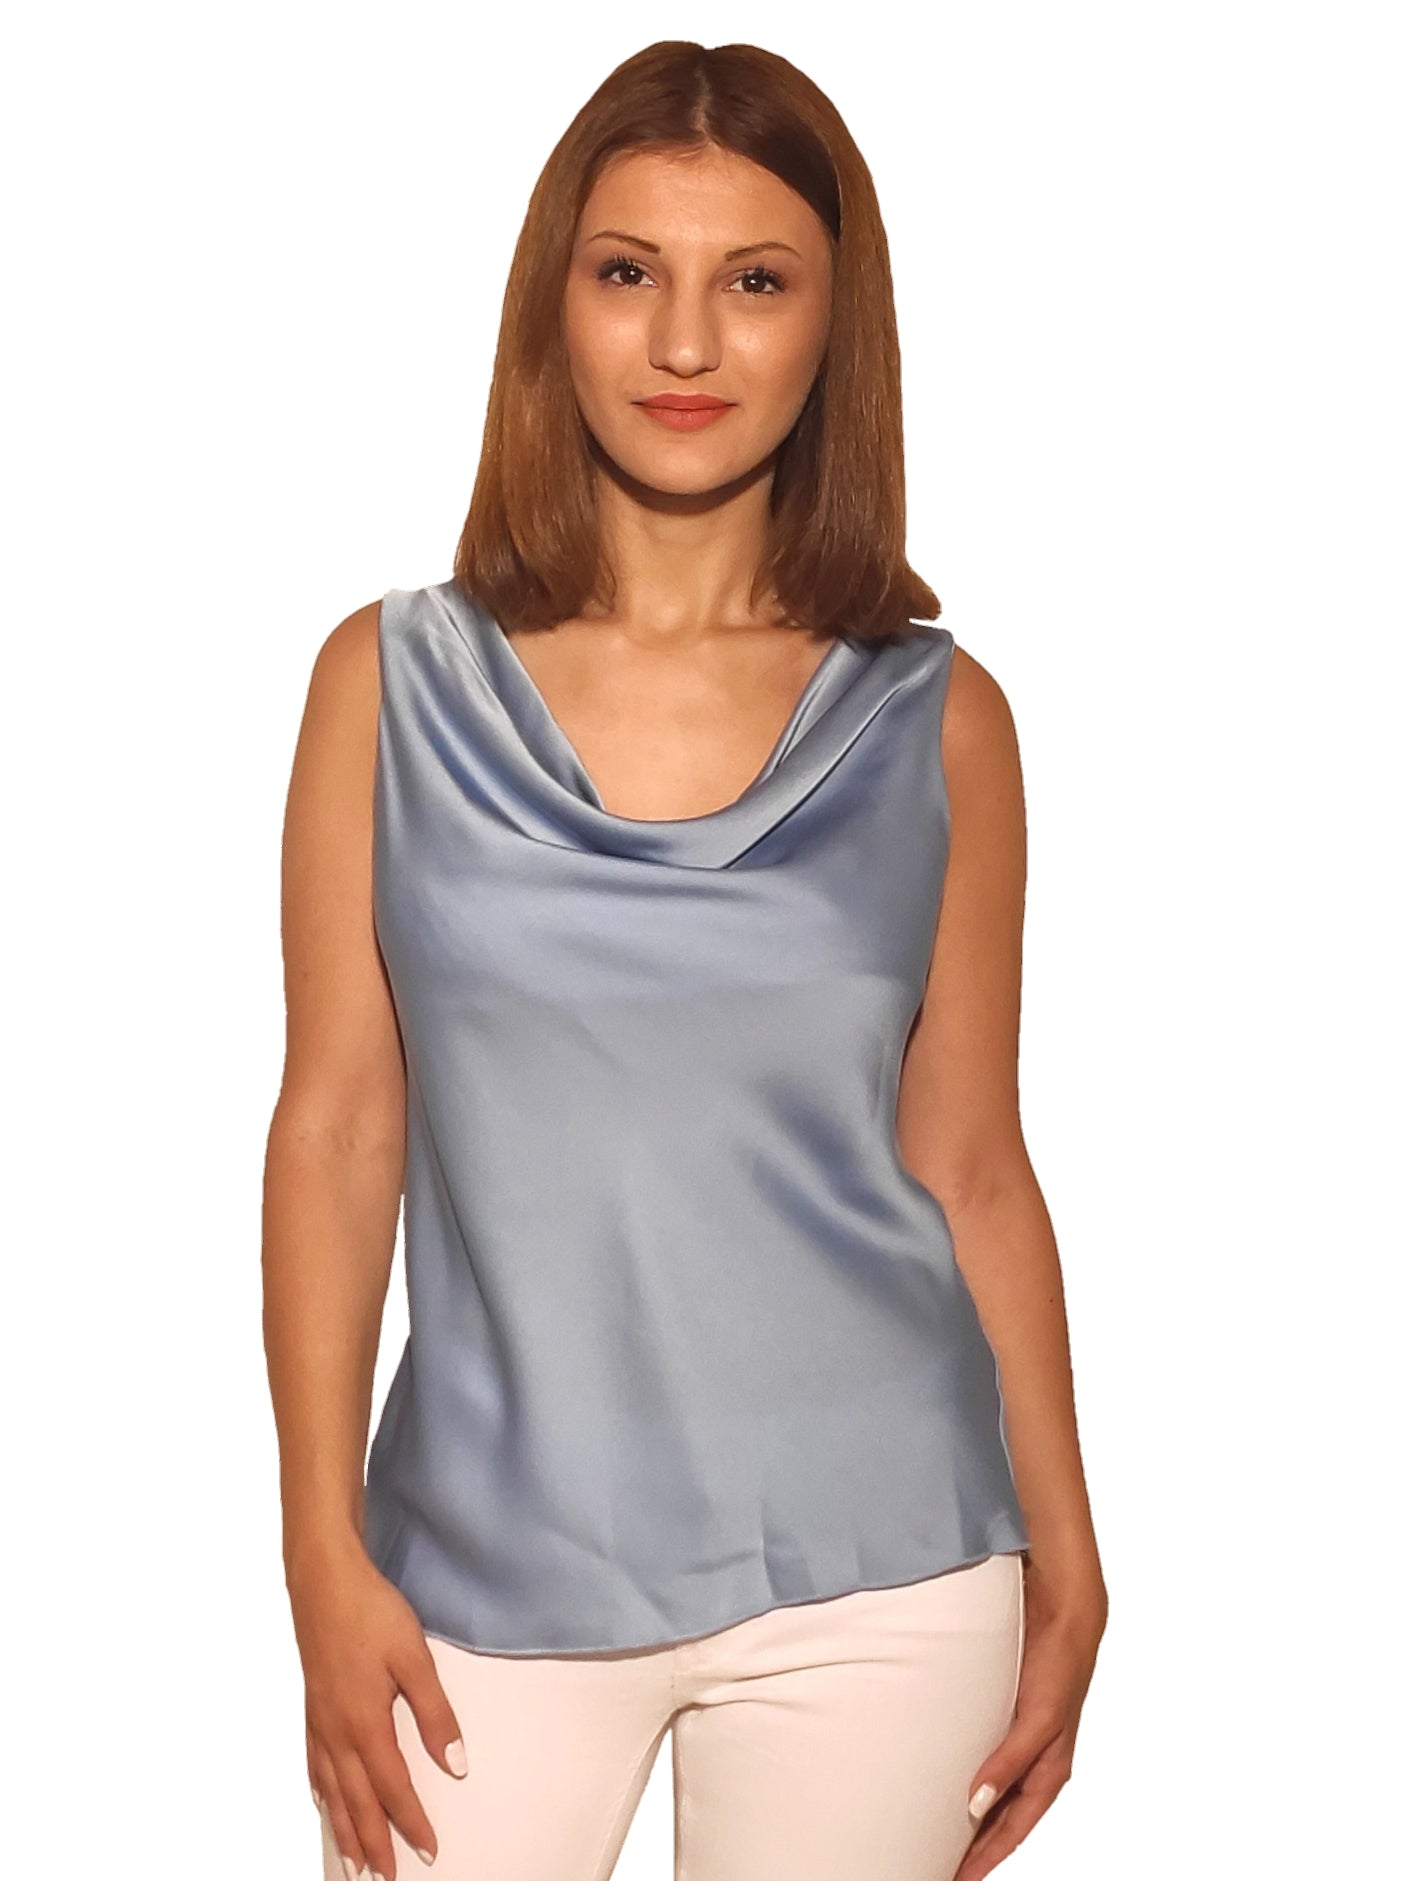 brunet-girl-wears-a-sleeveless-tirquoise-blouse-with-satin-texture-front